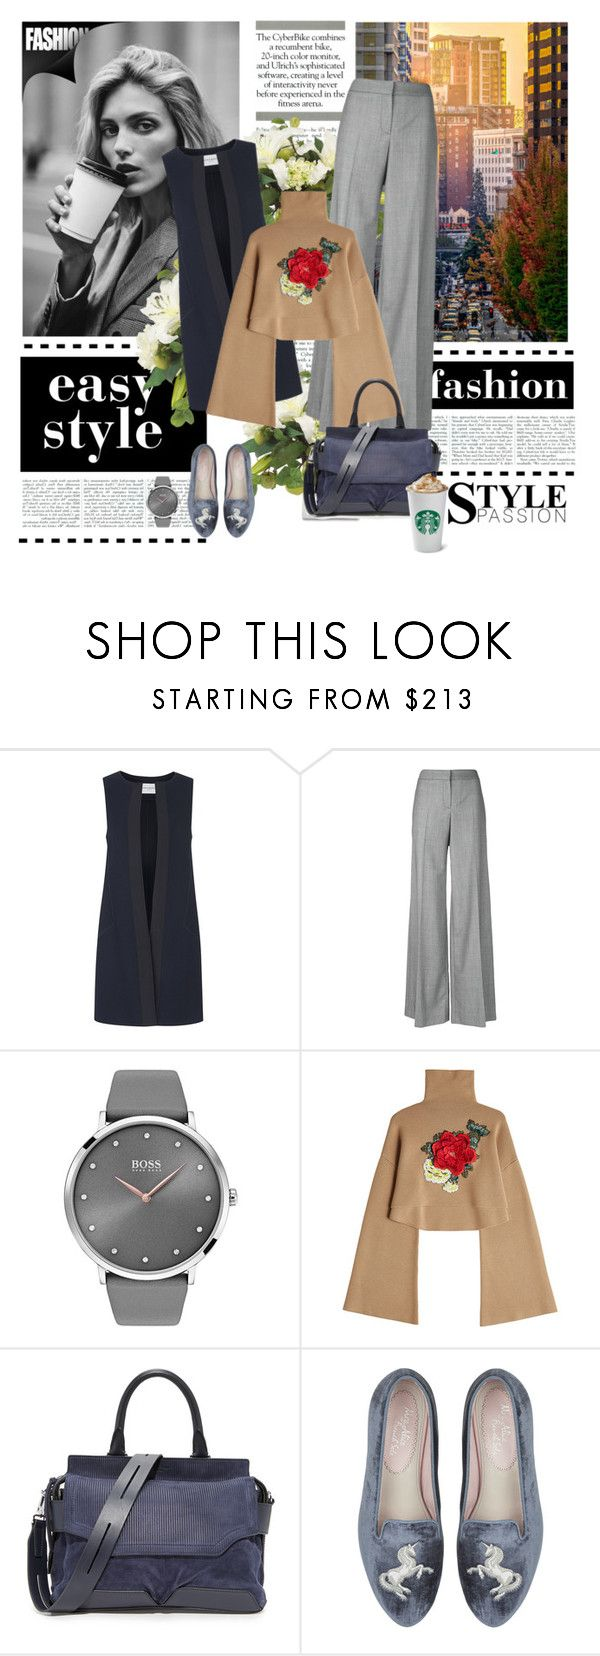 """Jillian"" by dragonfly-lt ❤ liked on Polyvore featuring Anja, Amanda Wakeley, Alexander McQueen, BOSS Black, William Fan and rag & bone"